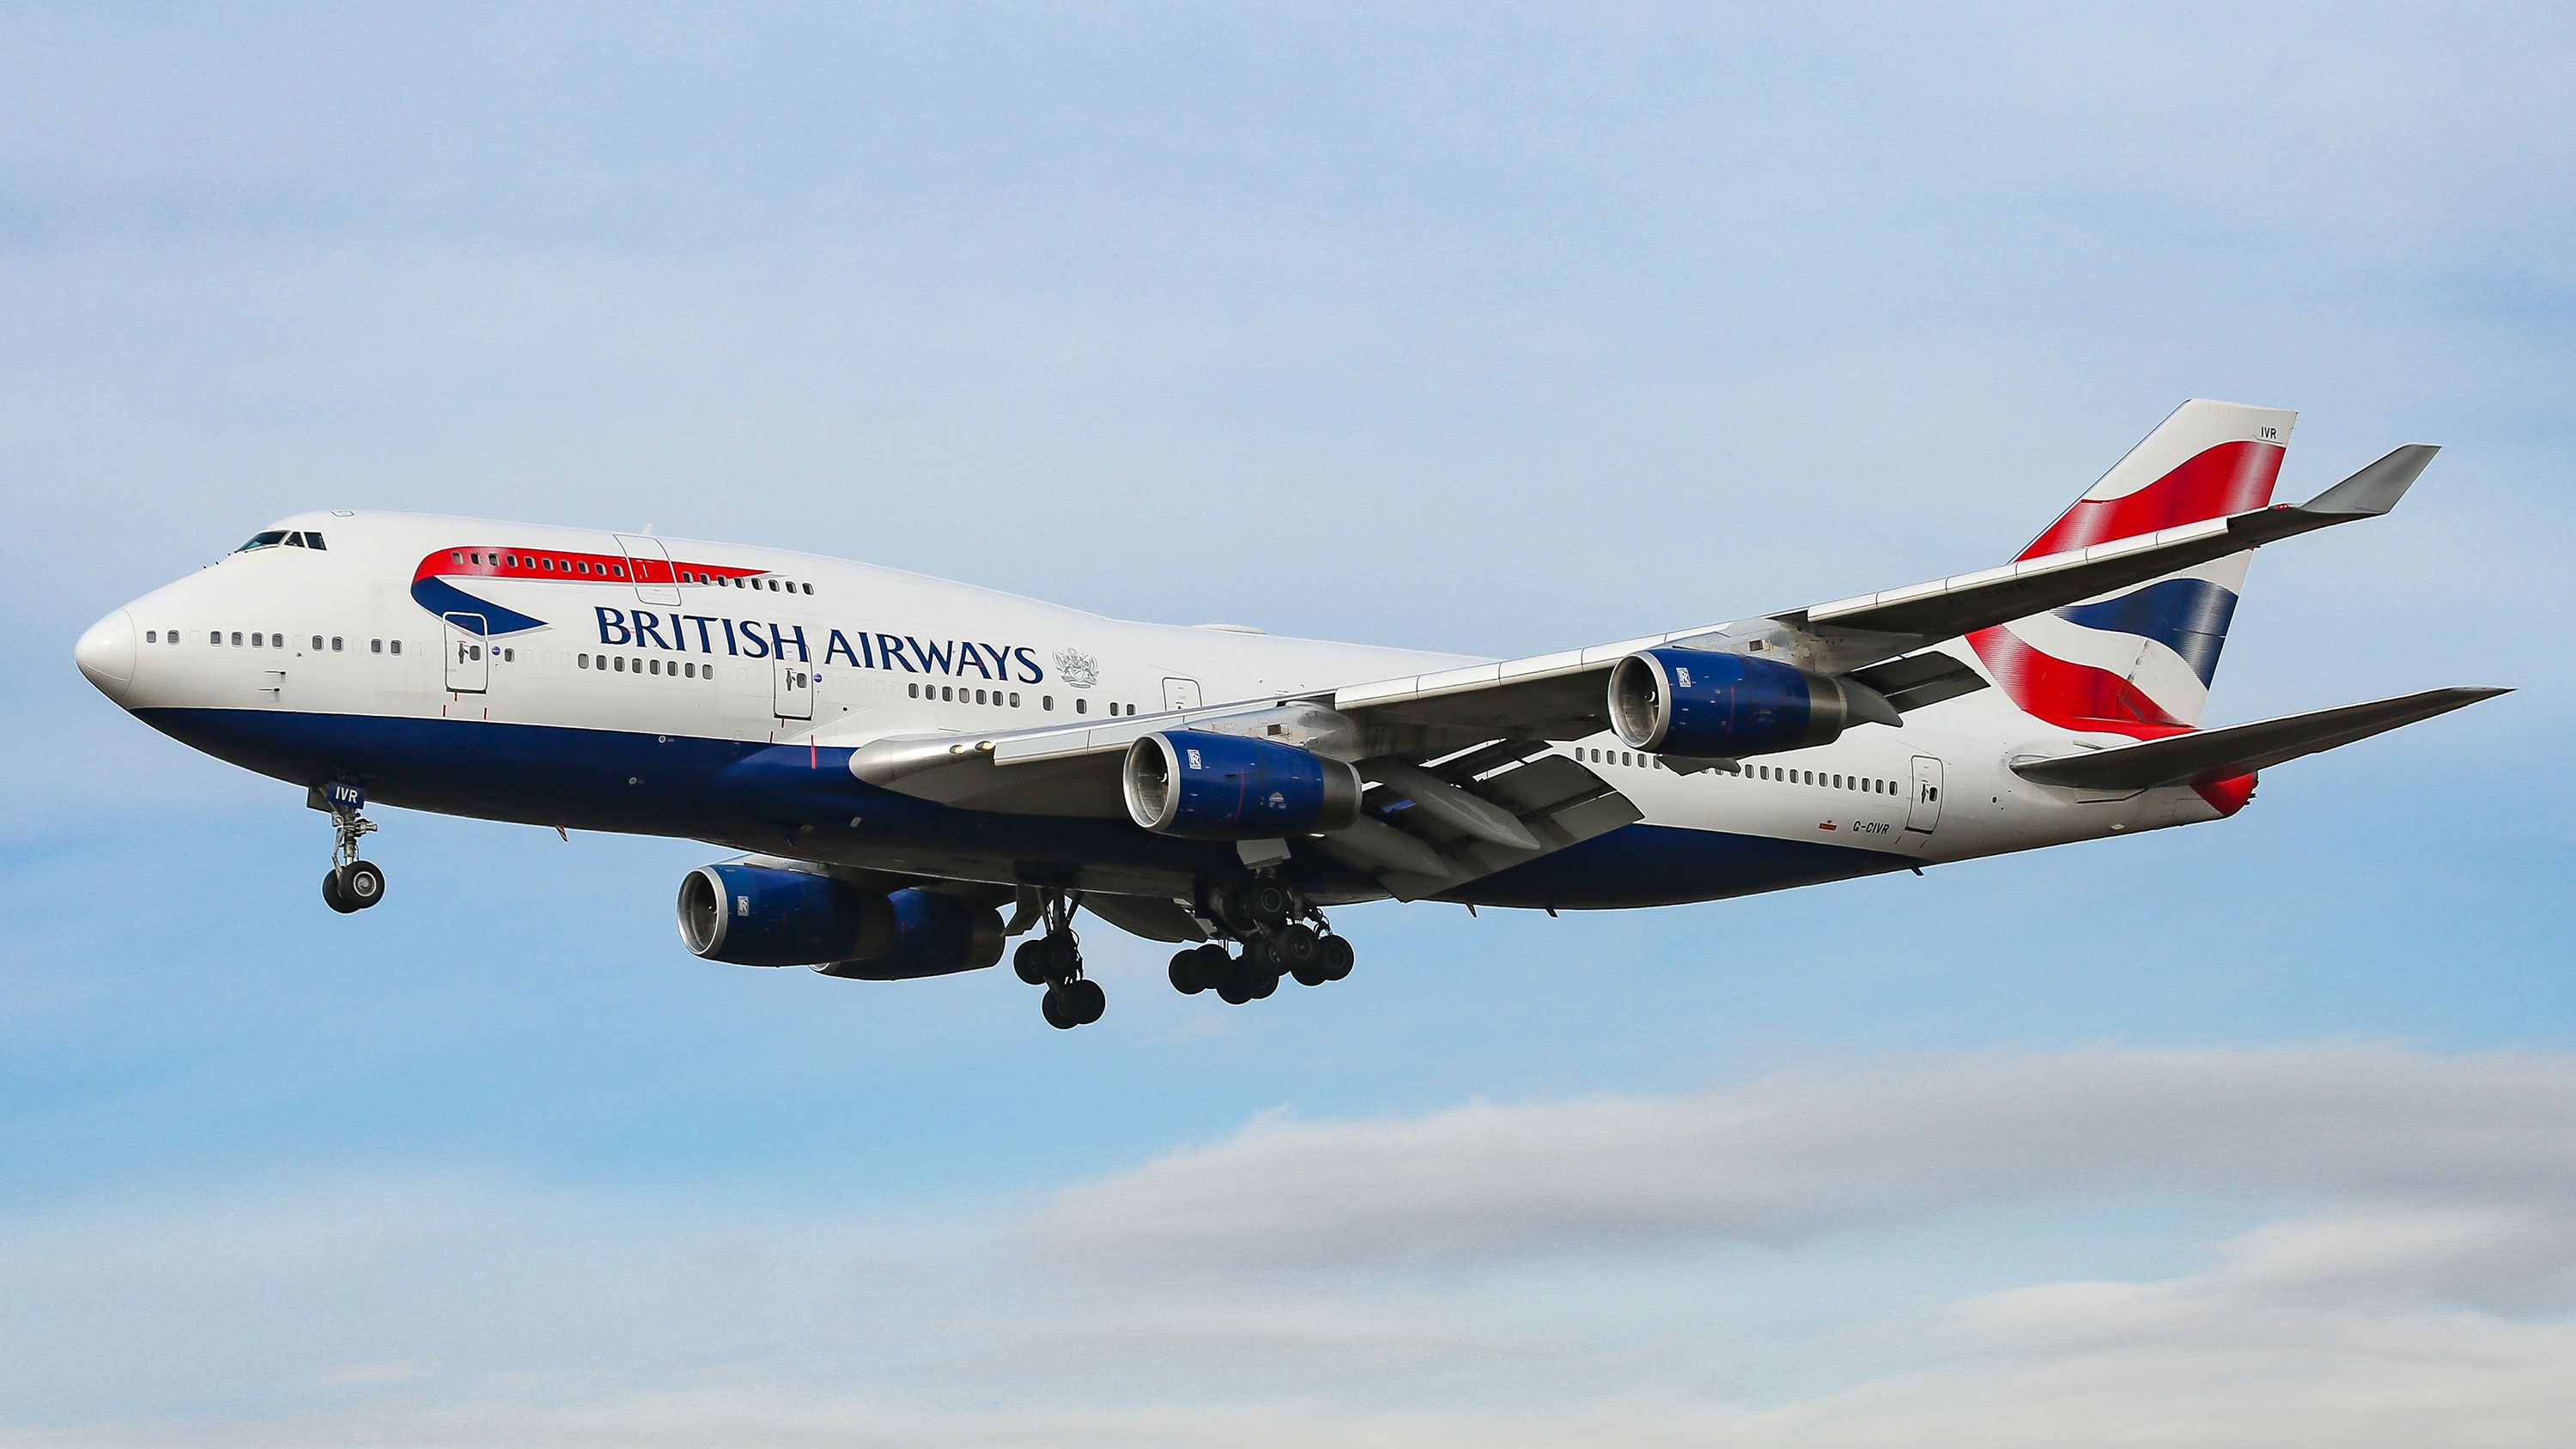 This is a picture of a British Aiways airplane.